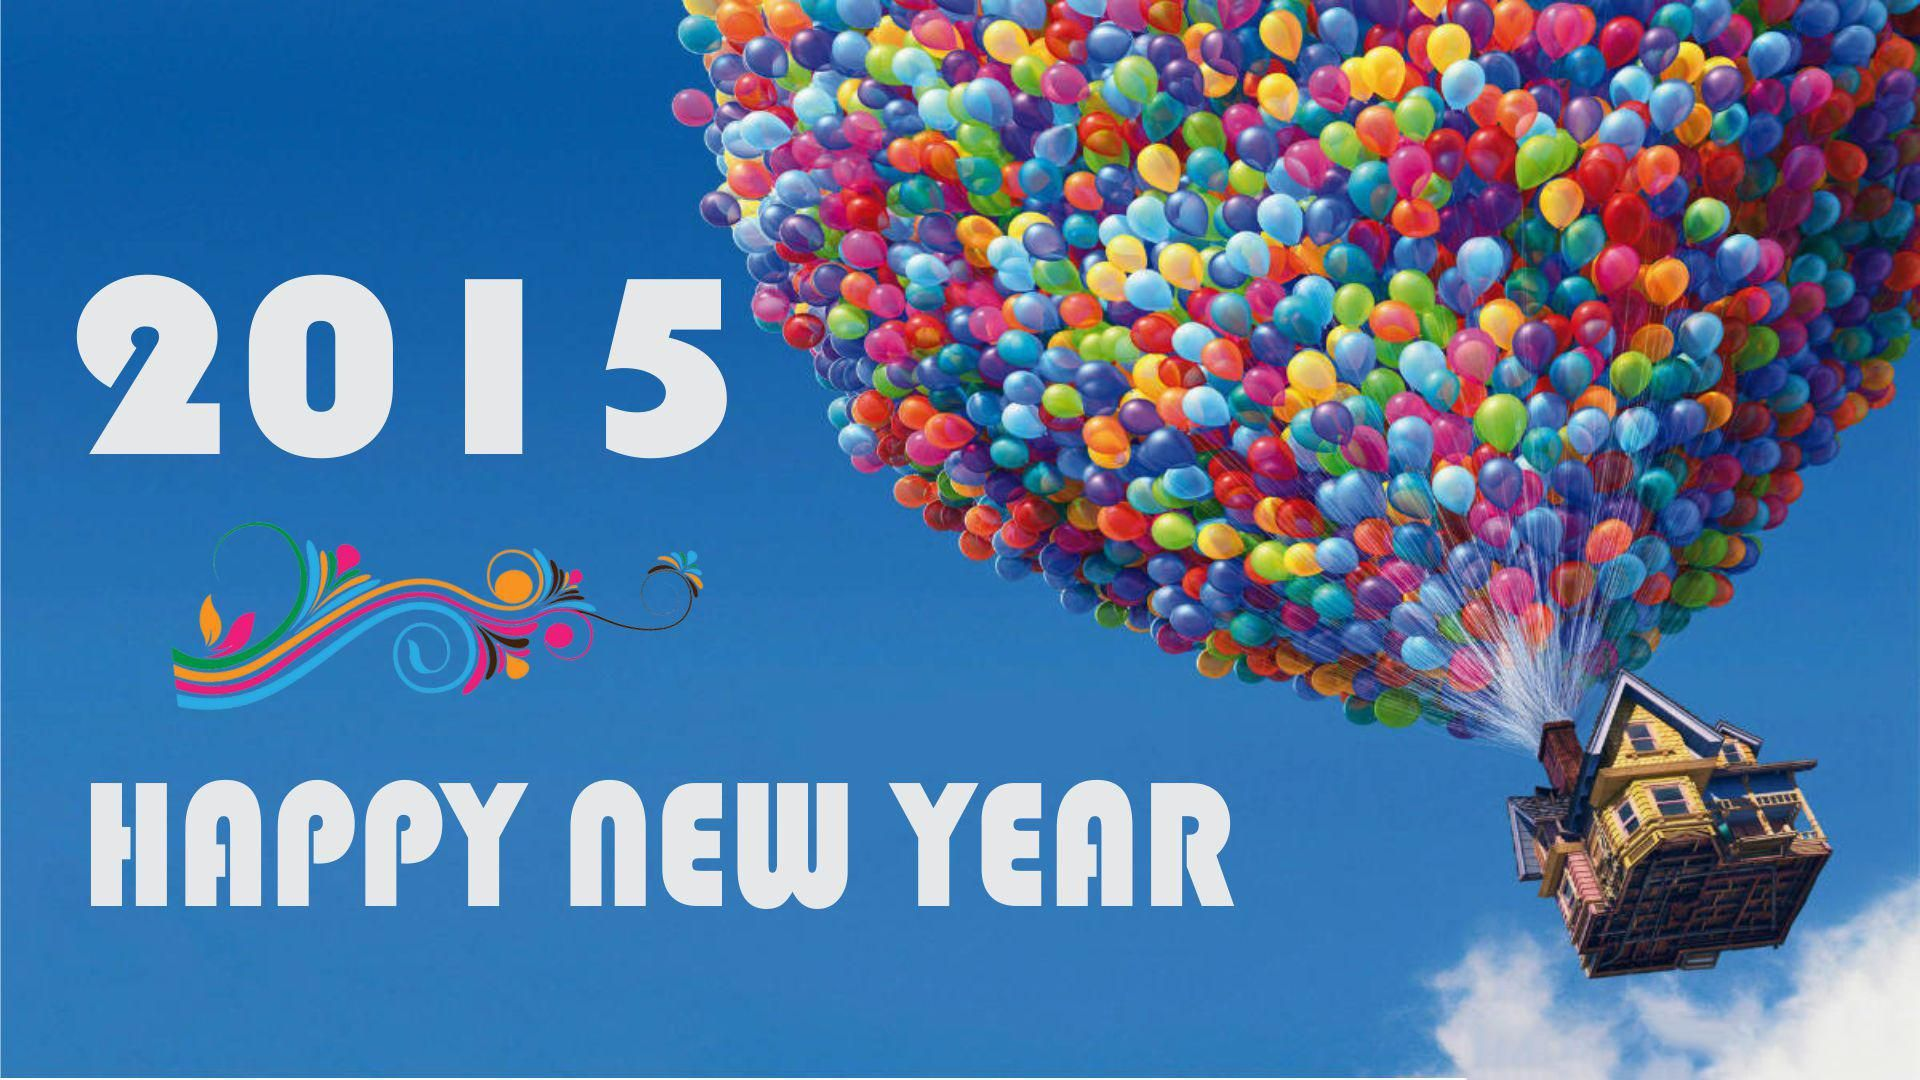 New Years Day 2015 Hd New Year Celebration 2015 Wallpaper